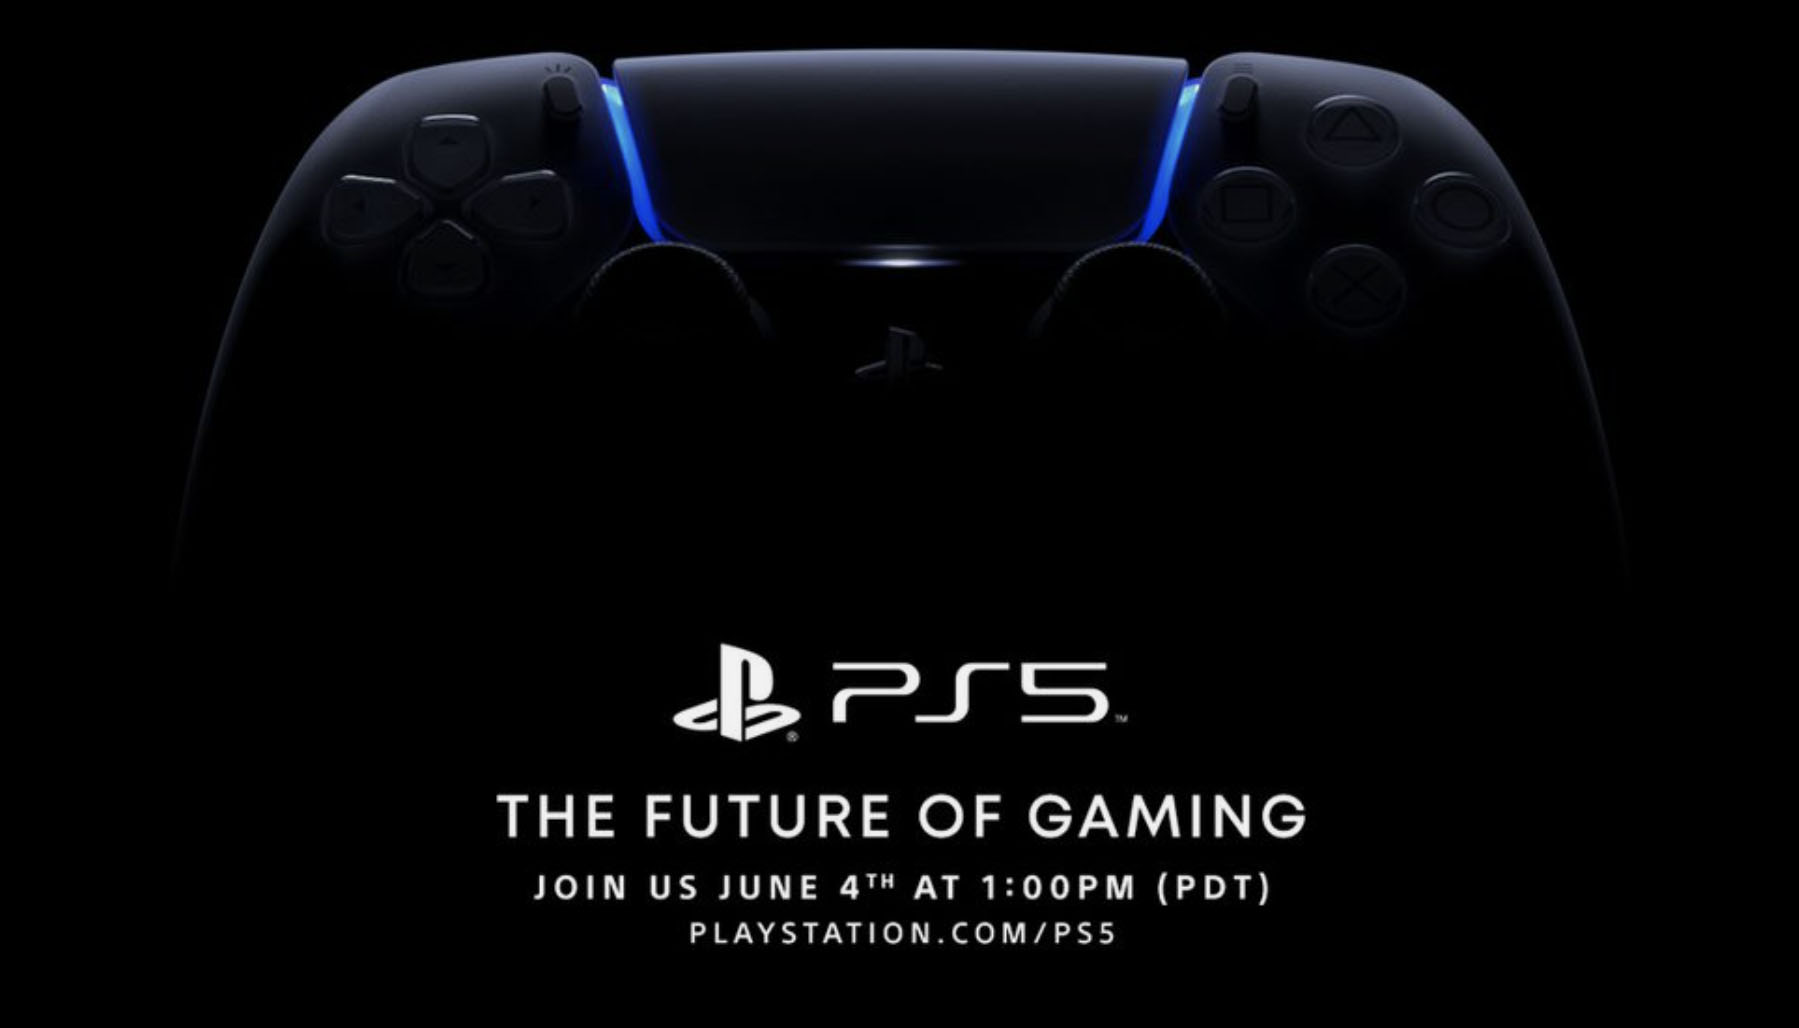 Sony to Hold PlayStation 5 Event on 4th June